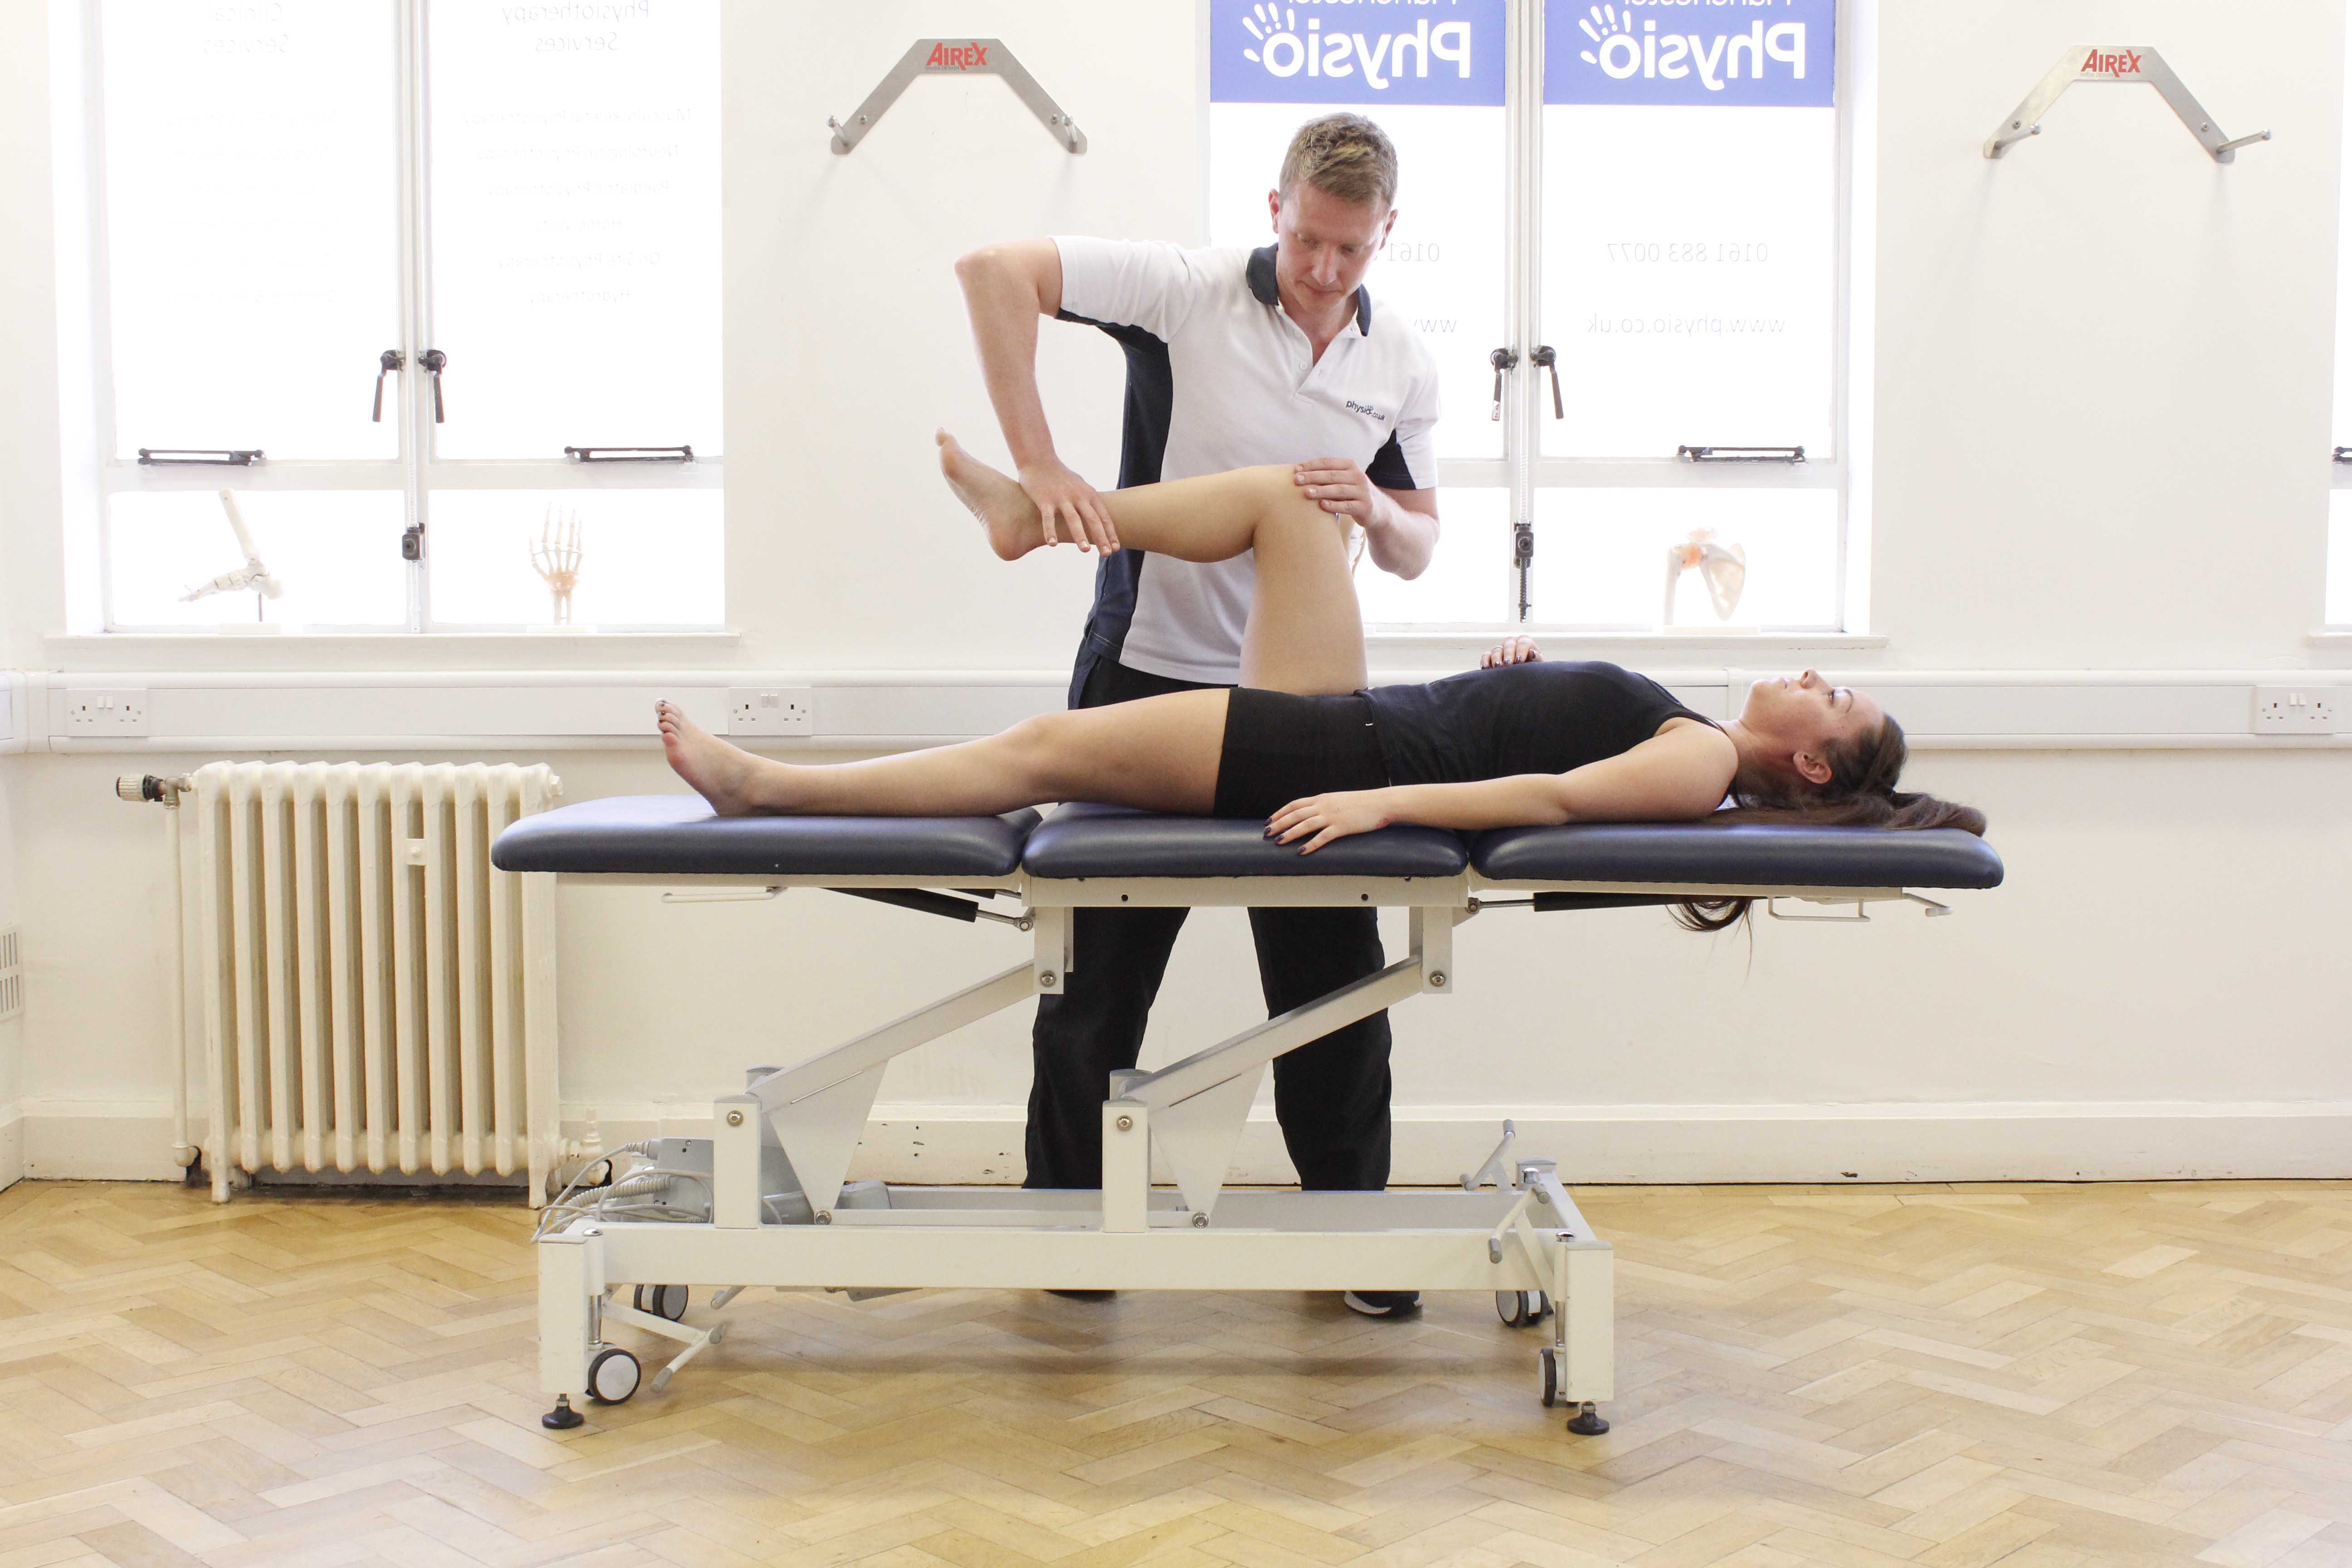 Strength testing during a physical assessment conducted by an experienced physiotherapist